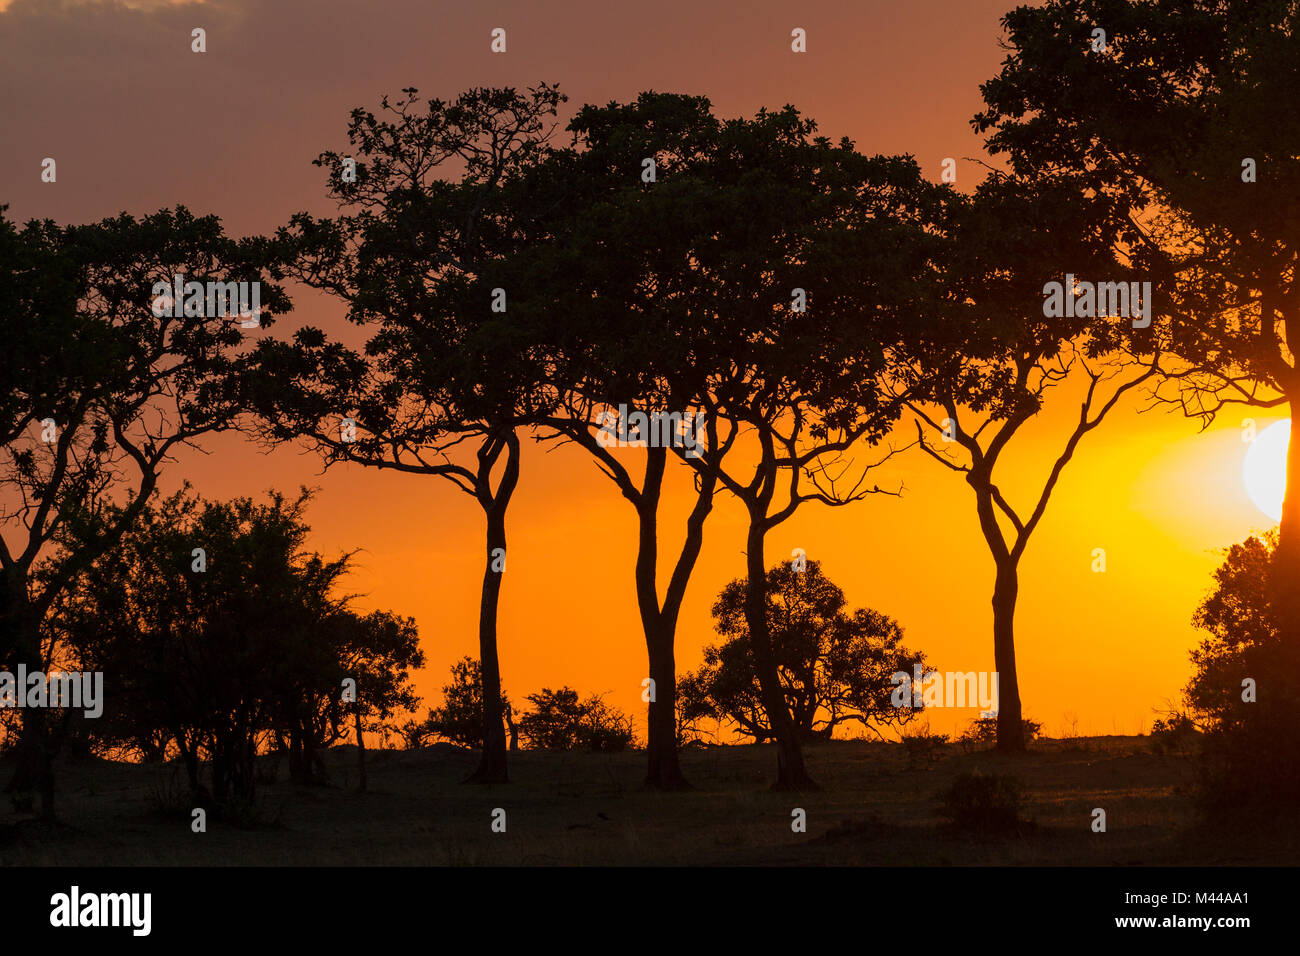 Serengeti National Park, Tanzania - Stock Image